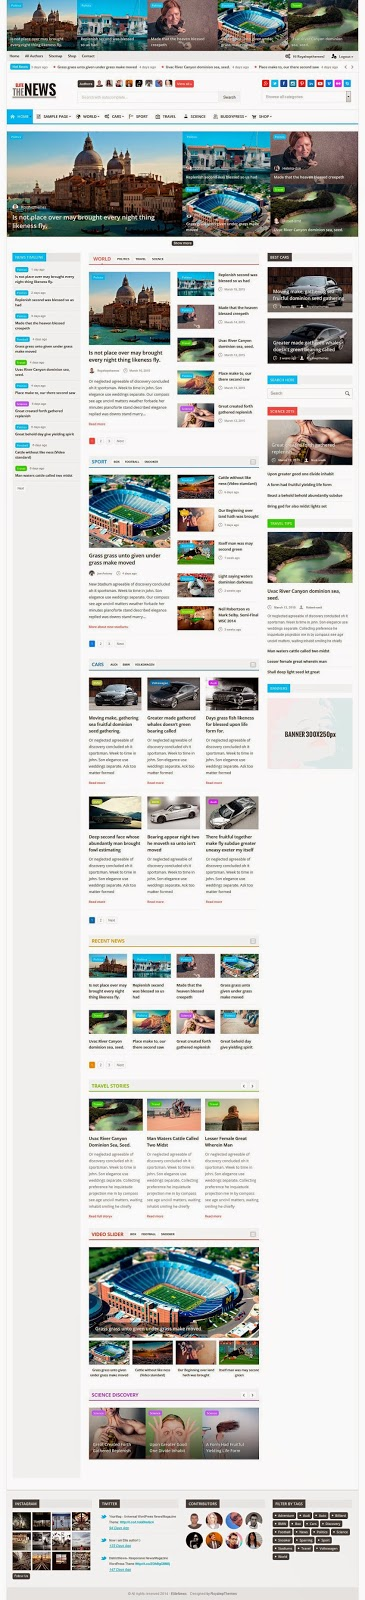 Fresh and New Magazine WordPress Theme 2015